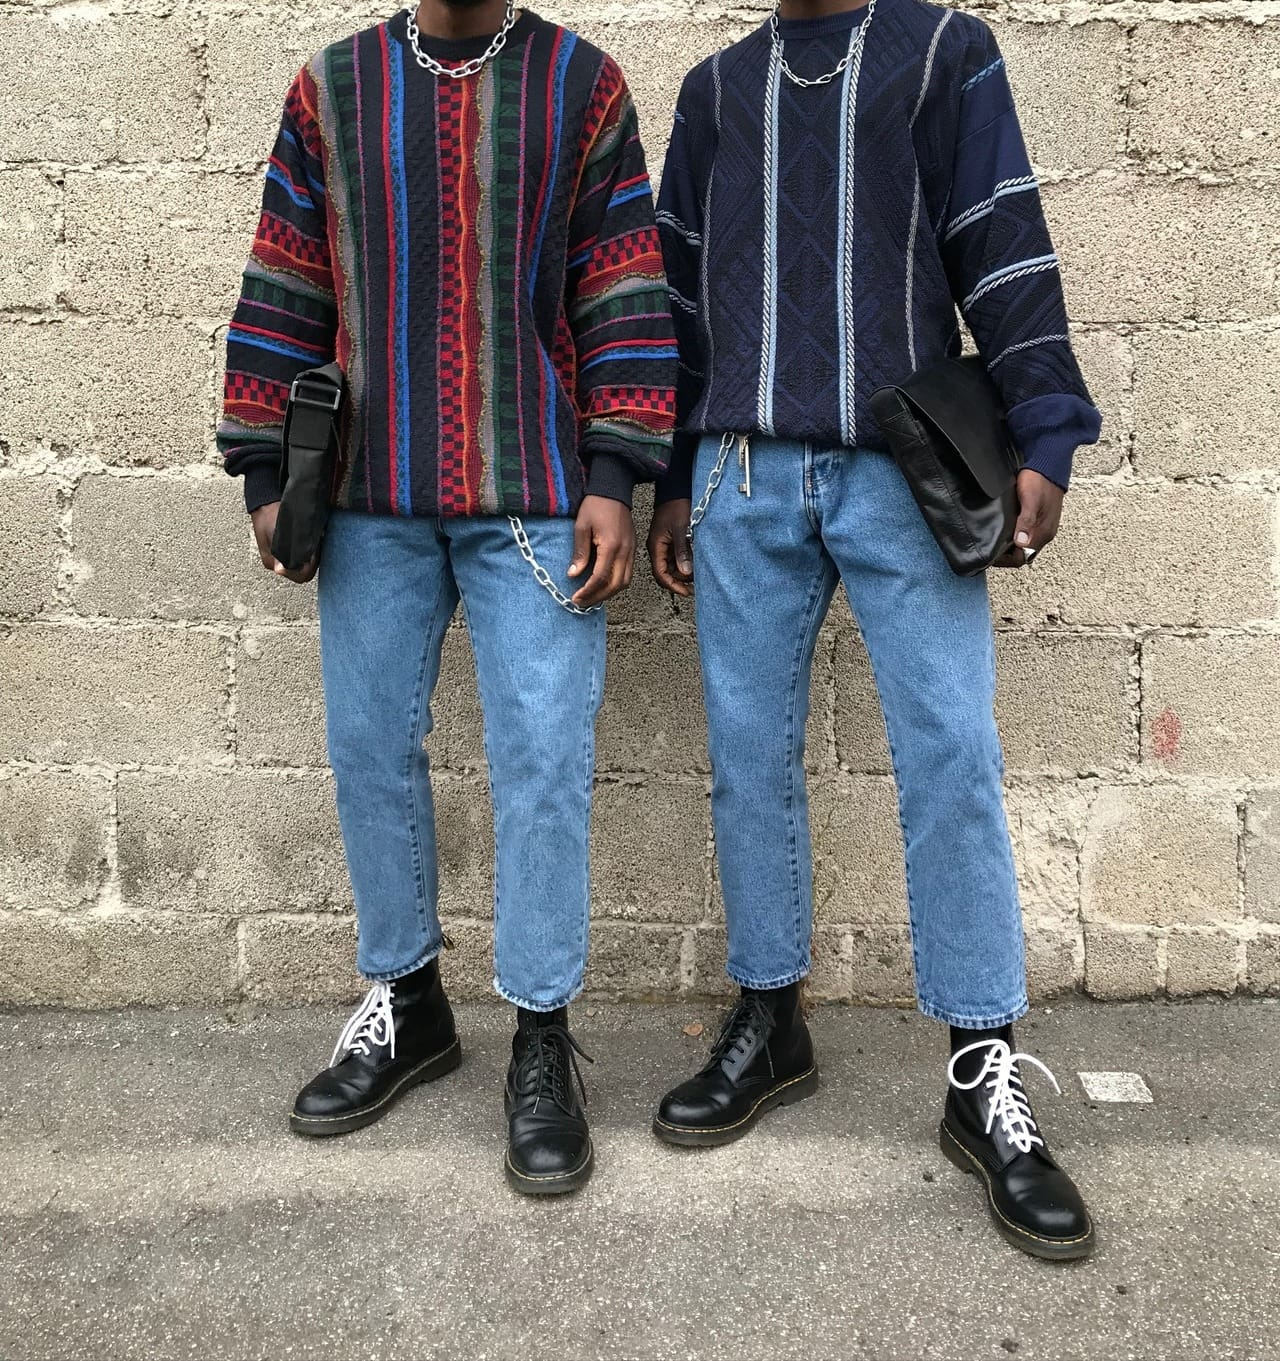 90s look for guys